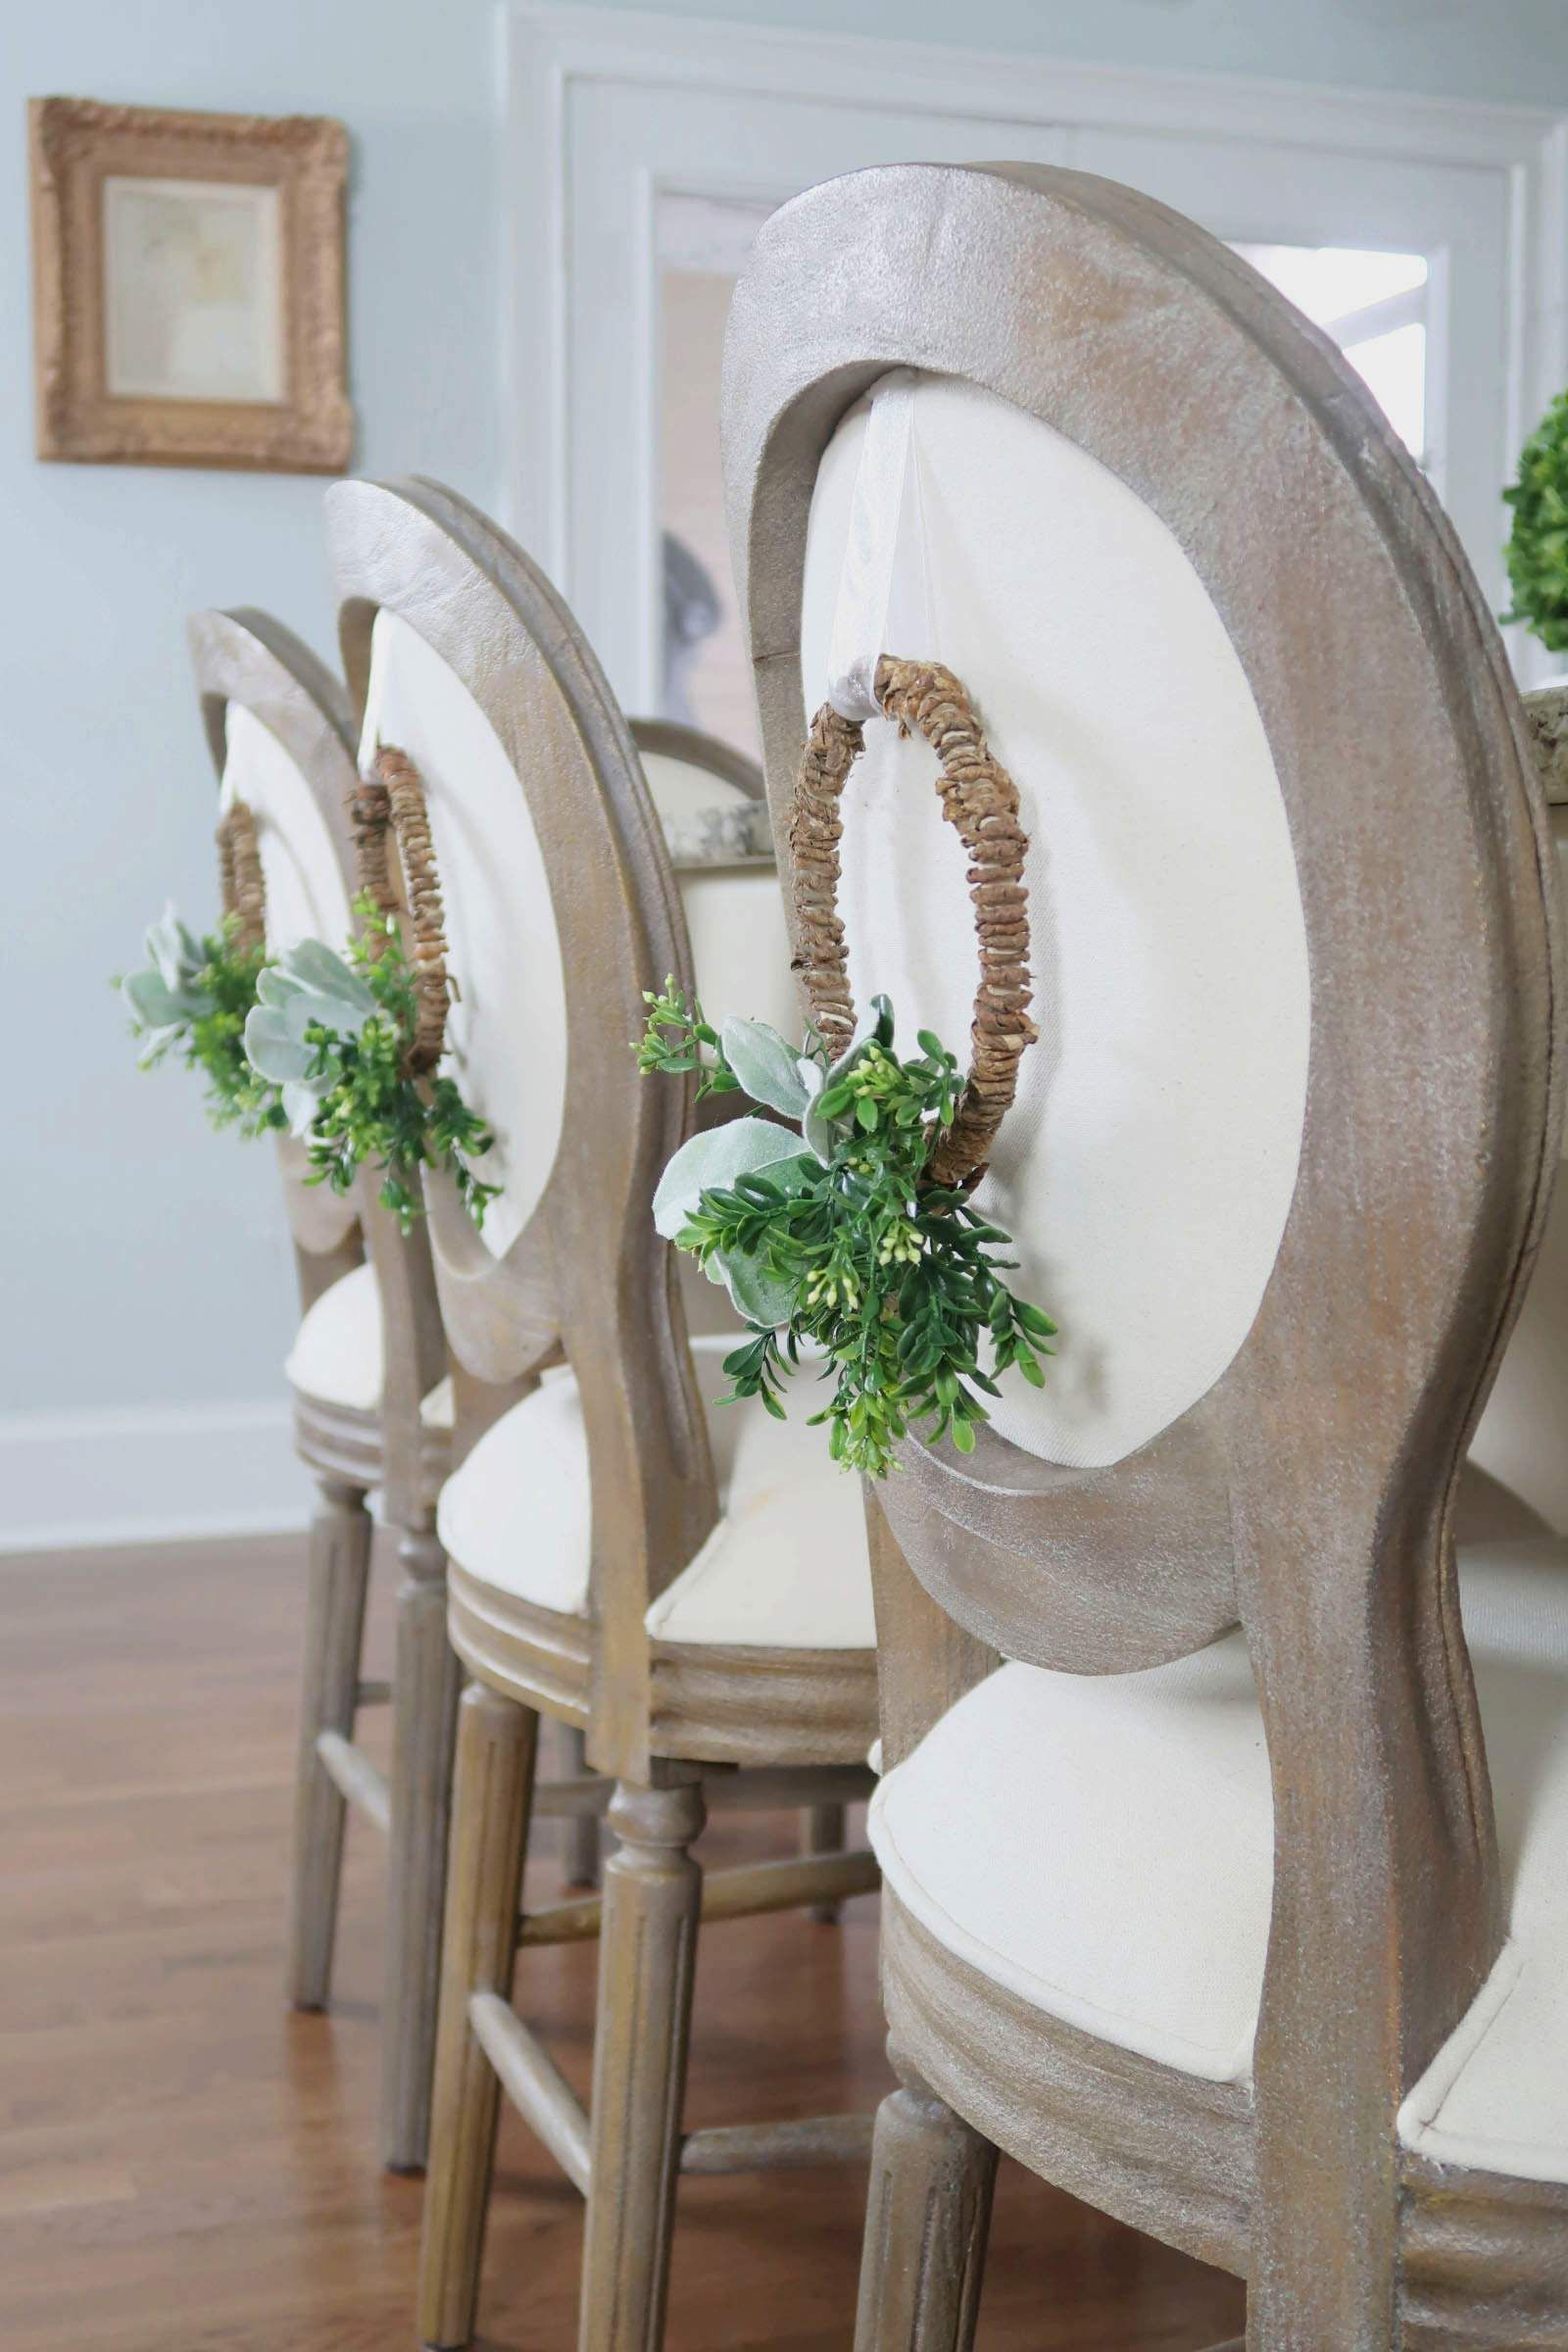 How To Make A Wreath For The Back Of A Chair Easy Christmas Wreaths Affordable Christmas Decorations Large Christmas Ornaments